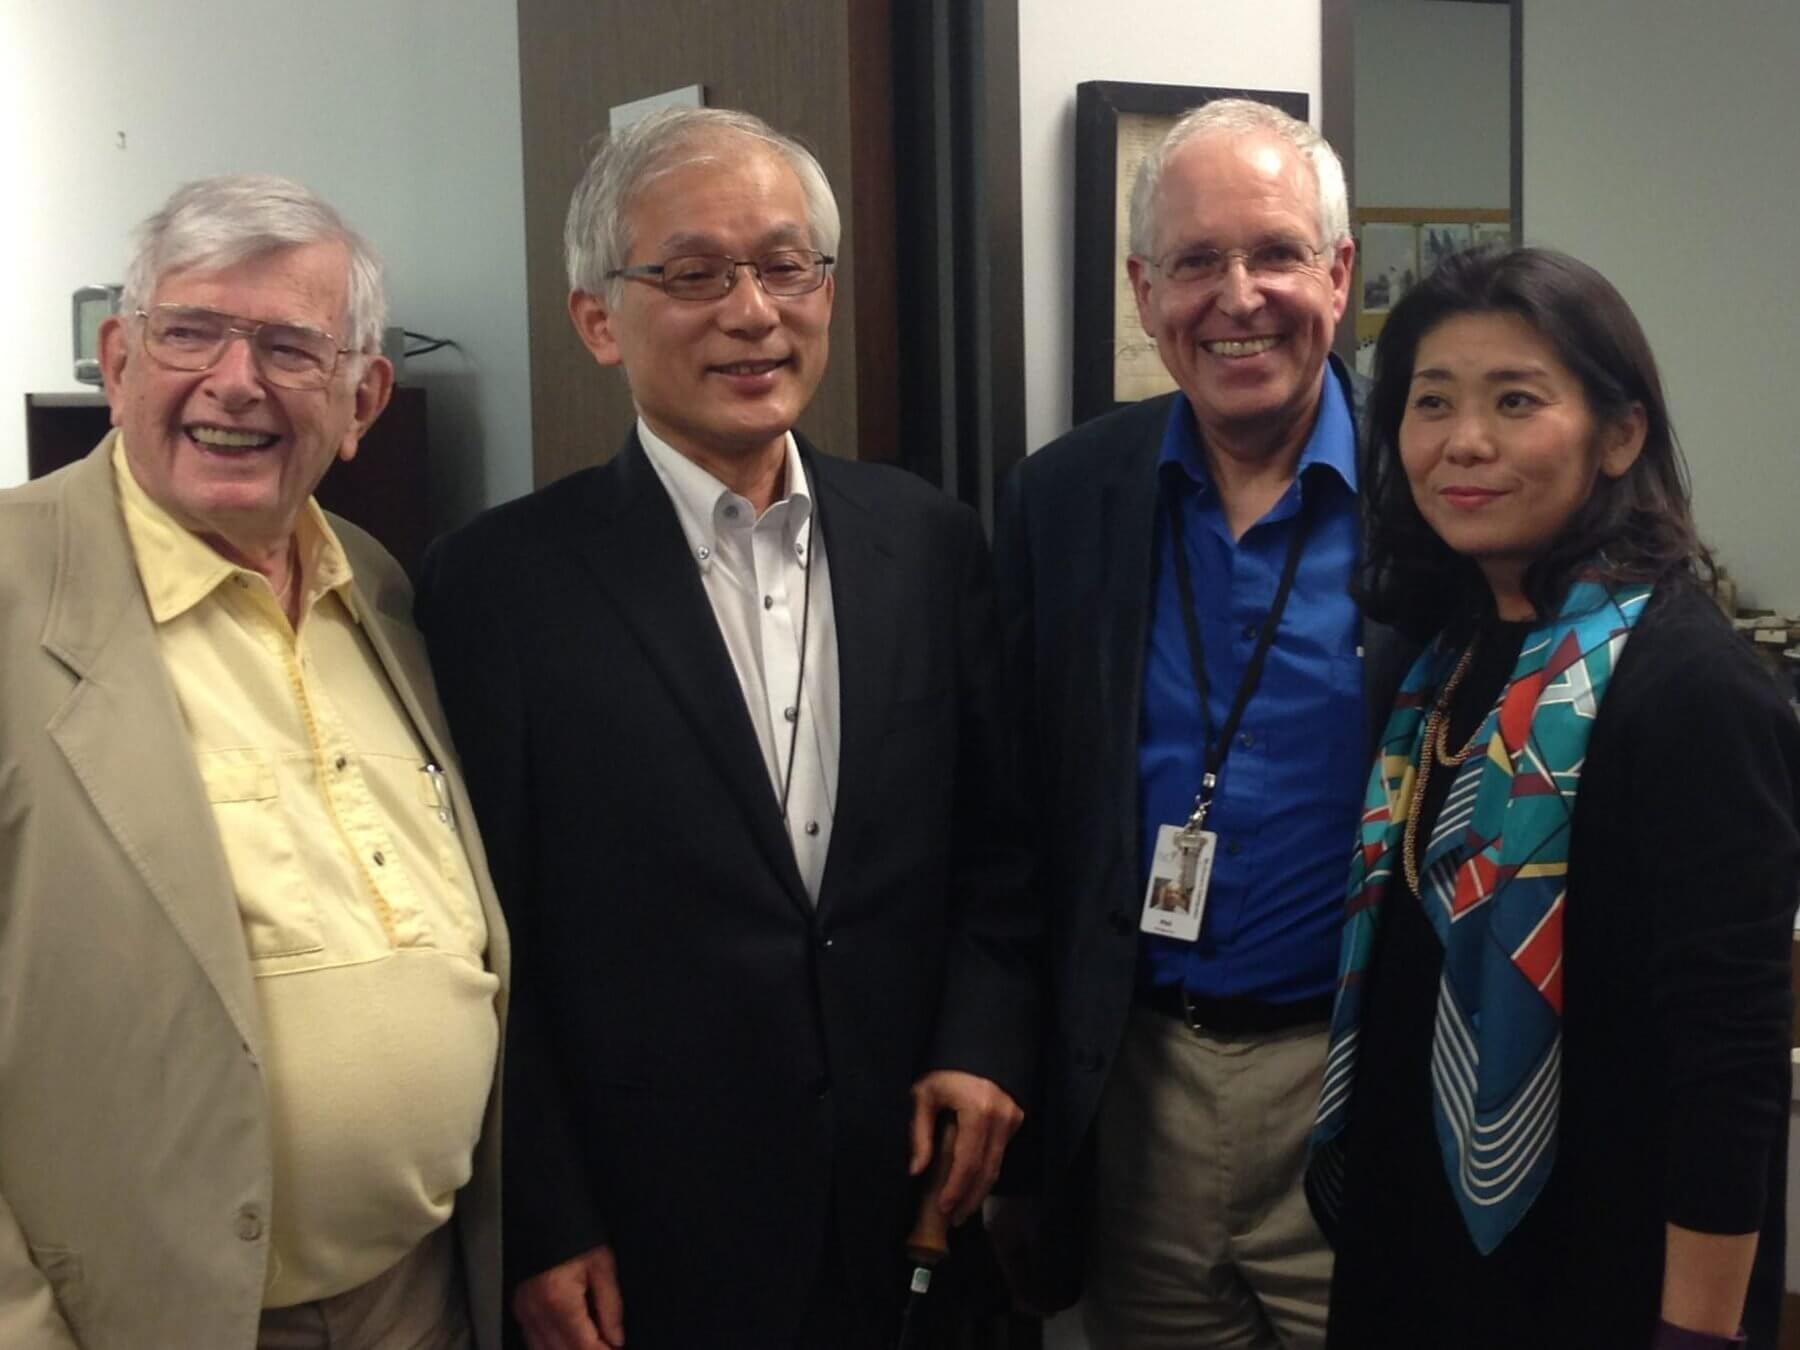 Left to right, William J. Schull, Ph.D., professor emeritus of genetics and epidemiology at the School of Public Health at The University of Texas Health Science Center at Houston; Masahito Ando, Ph.D., a professor of archival science at Gakushuin University in Tokyo, Japan; Philip Montgomery, MLIS, CA, head of the TMC Library's McGovern Historical Center; and archivist and historian Kaori Maekawa.